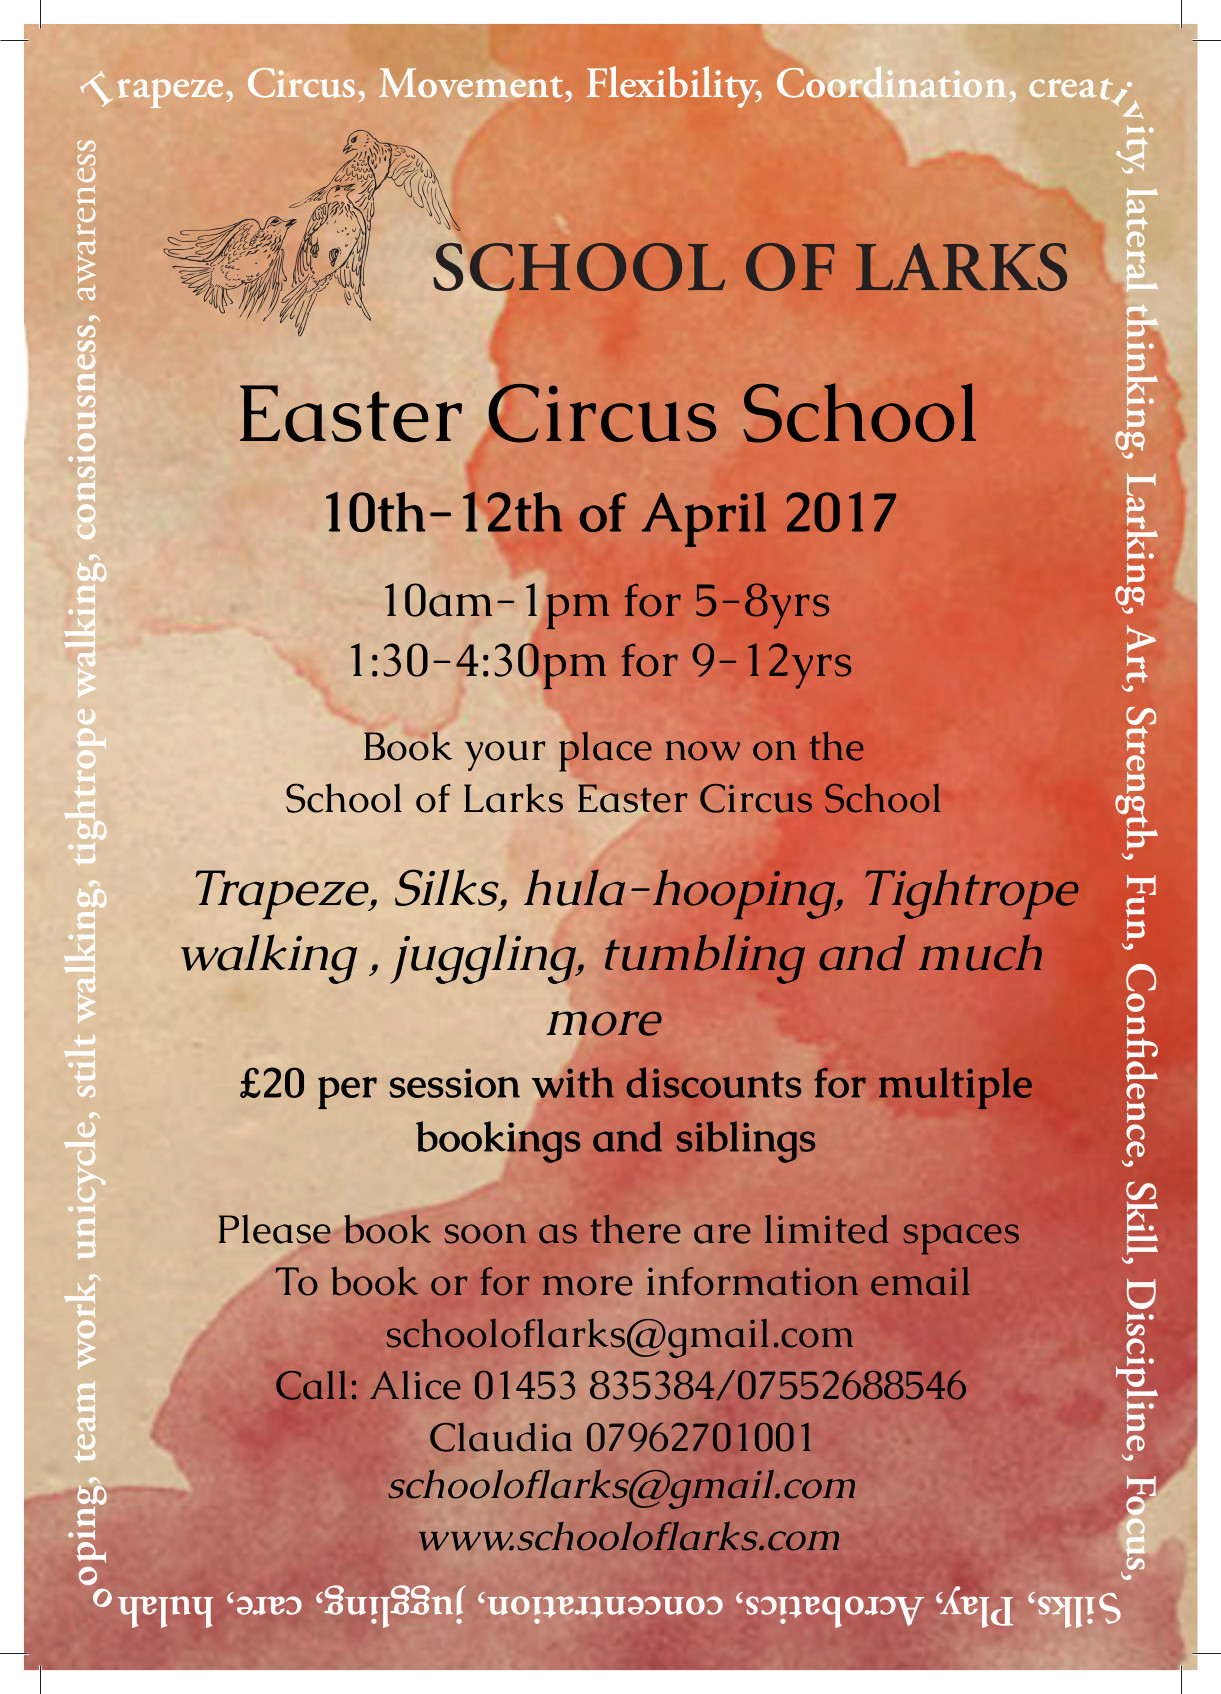 School of larks Easter School 2017